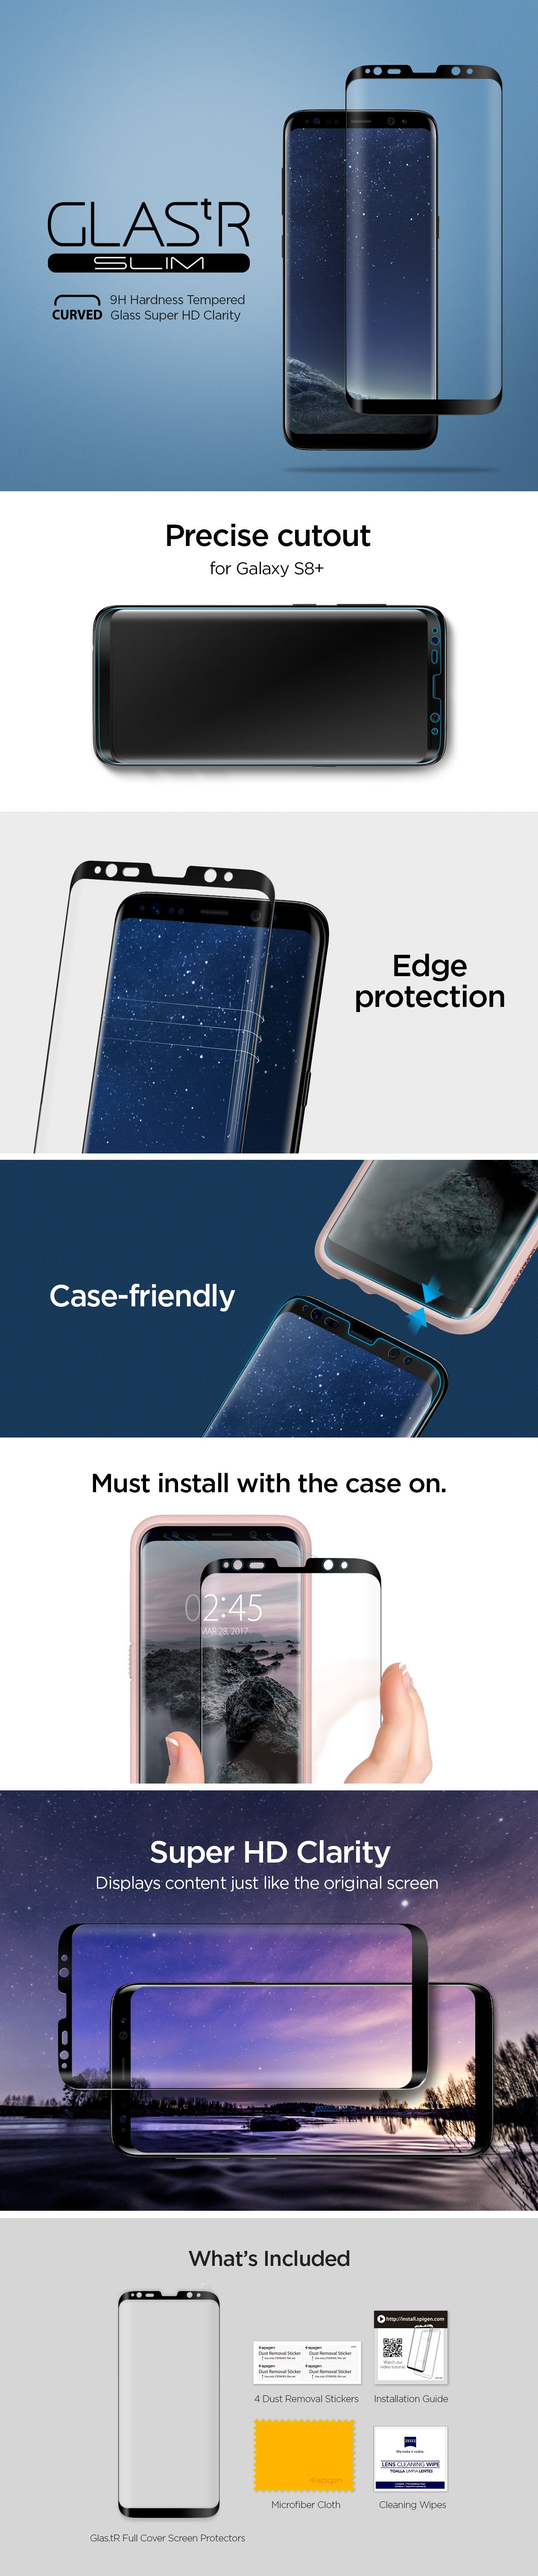 Galaxy S8 Plus Screen Protector Glastr Full Cover Glass Spigen Inc Stiker Carbon Transparan Samsung Note 5 An Error Occurred